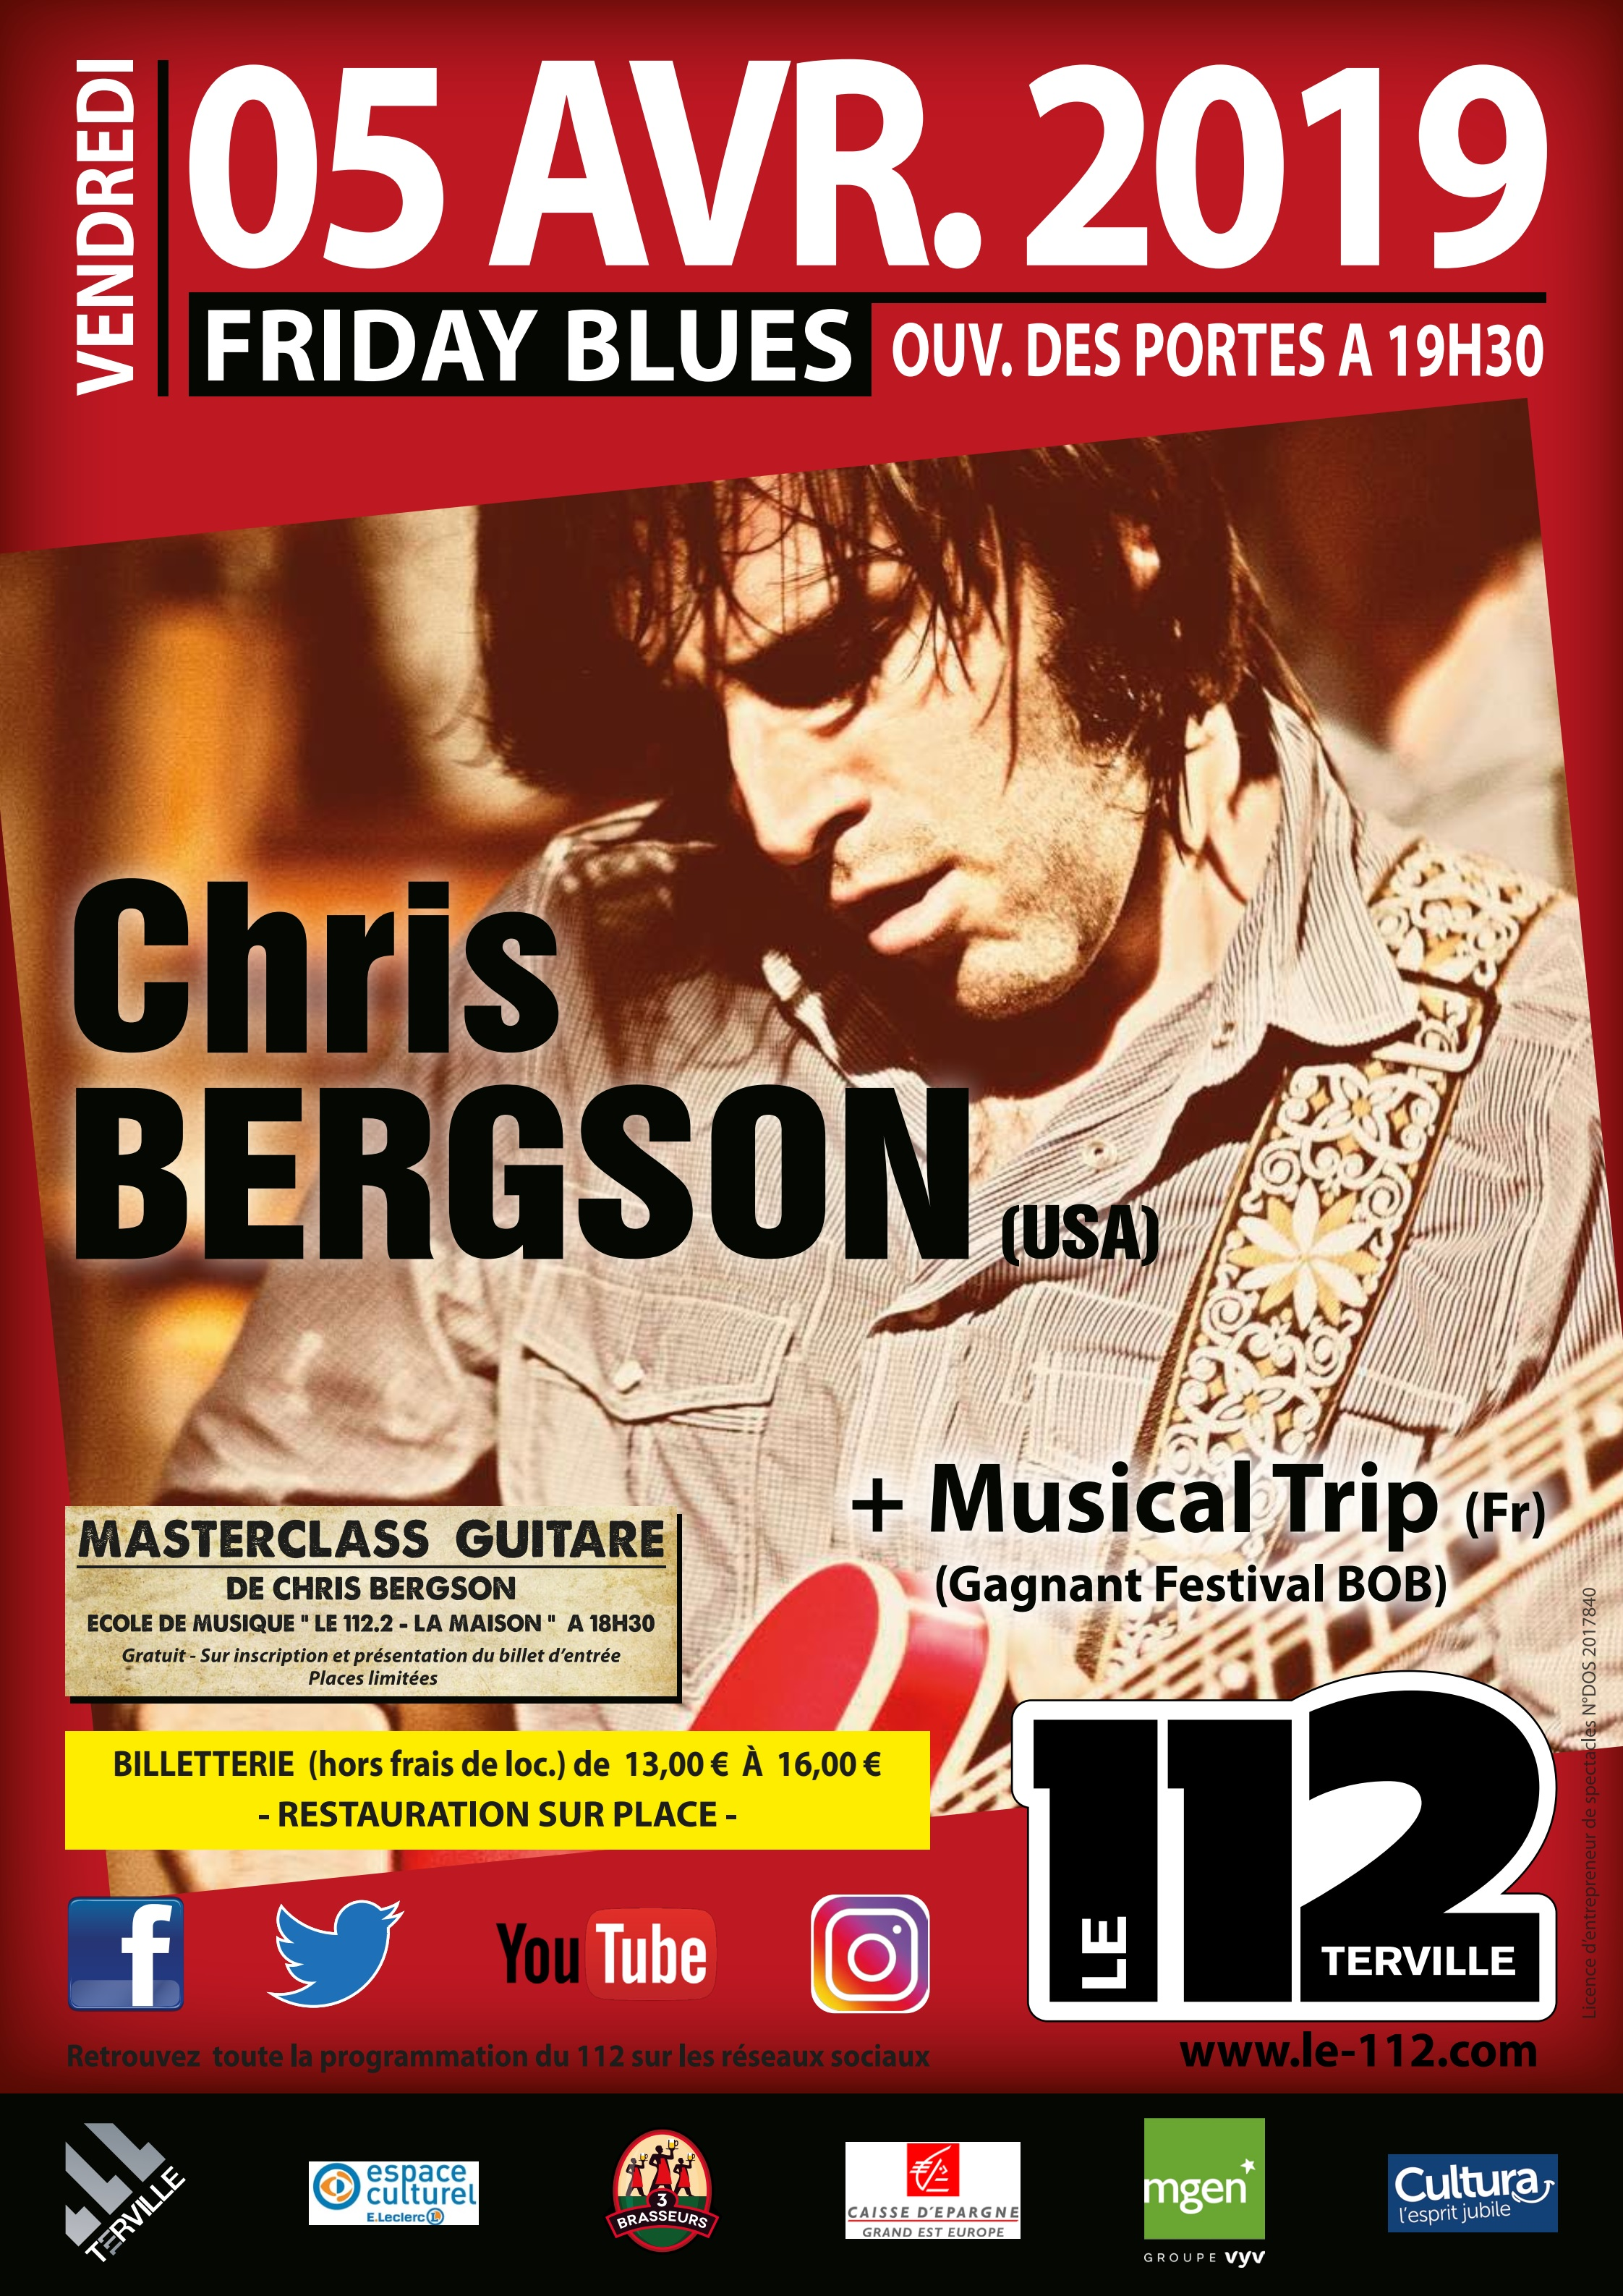 CHRIS BERGSON + Musical Trip